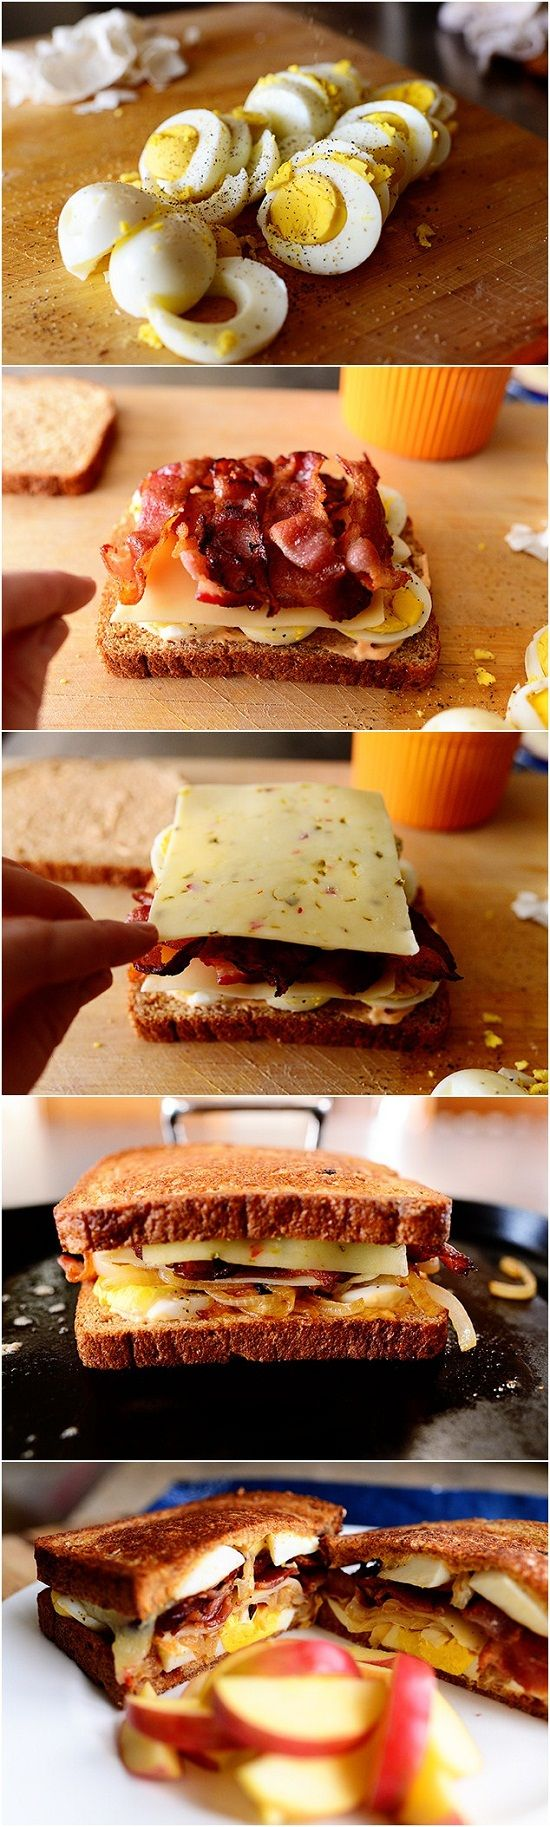 interesting...not sure if I want to try this or not... Ultimate Grilled Cheese Sandwich Recipe